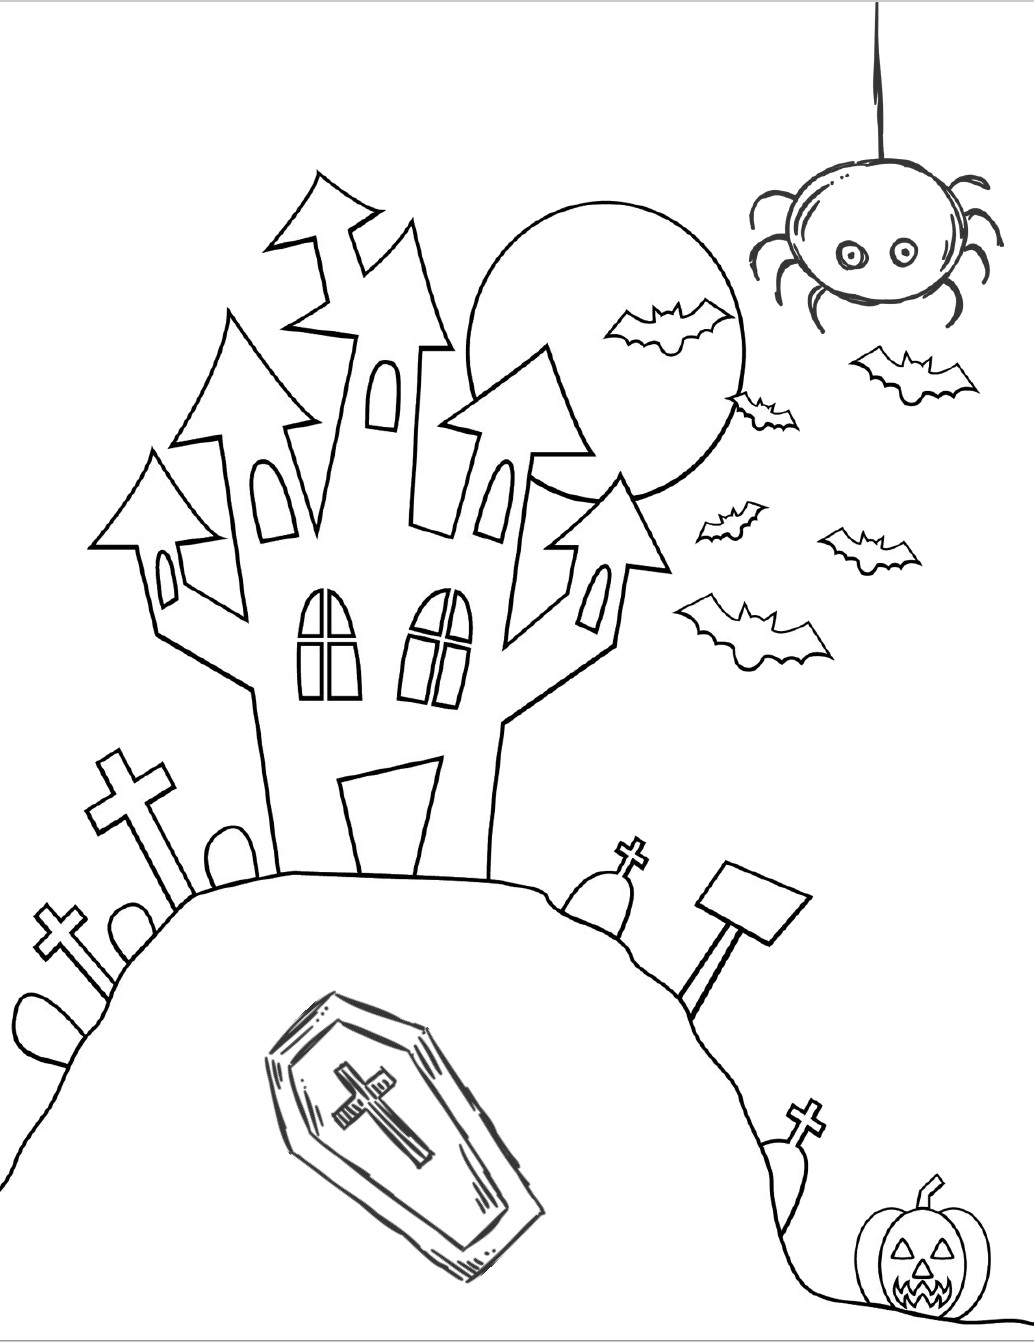 Spooky house on a hill. Free printable halloween coloring pages for kids. 5 designs to choose from! Spooky houses, ghosts, pumpkins, and fall-theme from easy to a little more difficult. #free #printable #freeprintable #halloween #coloring #halloweencoloring #freecoloring